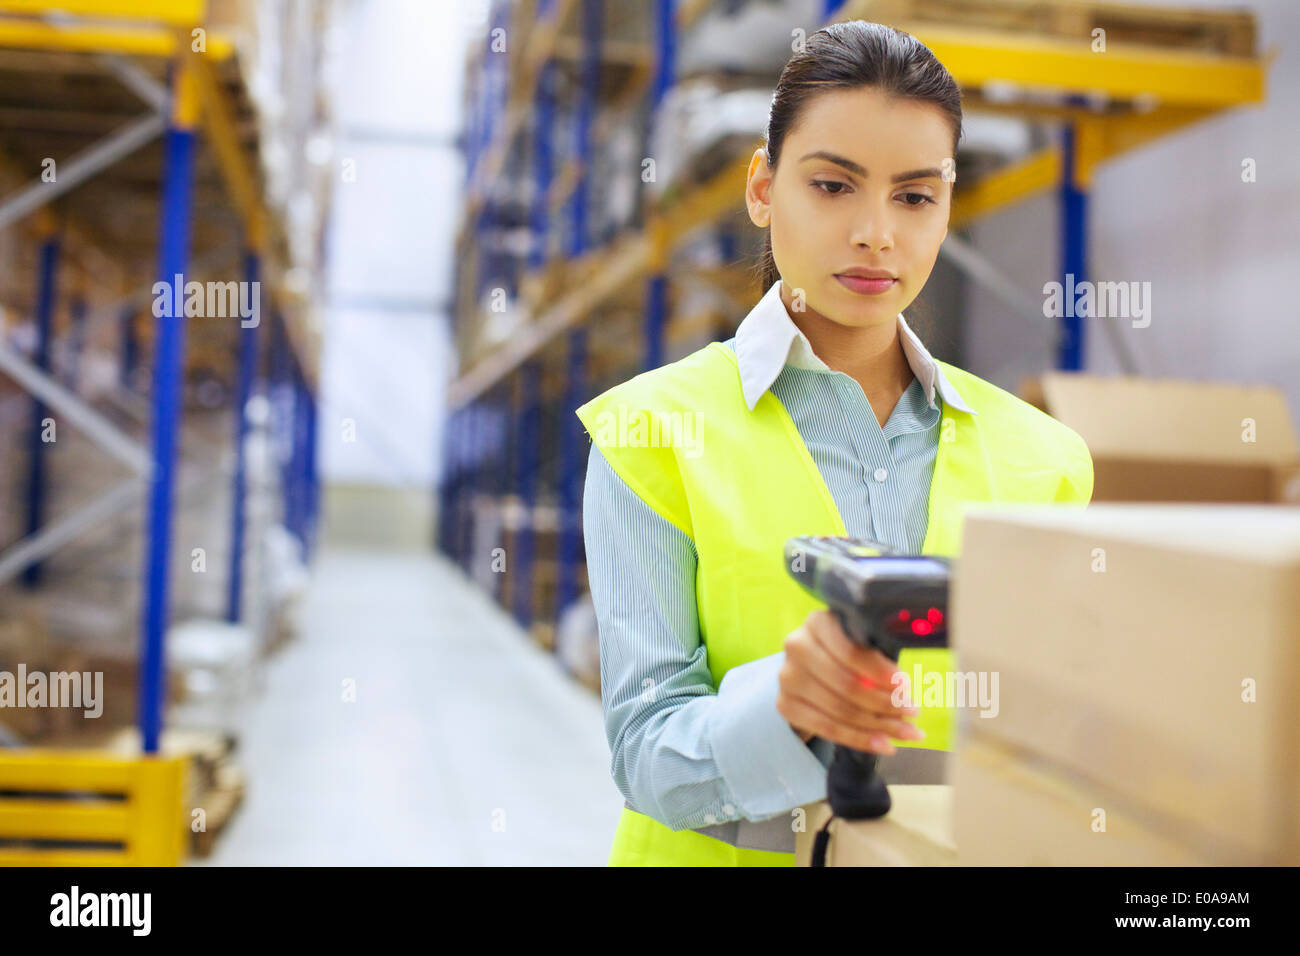 Young woman with barcode reader in distribution warehouse - Stock Image